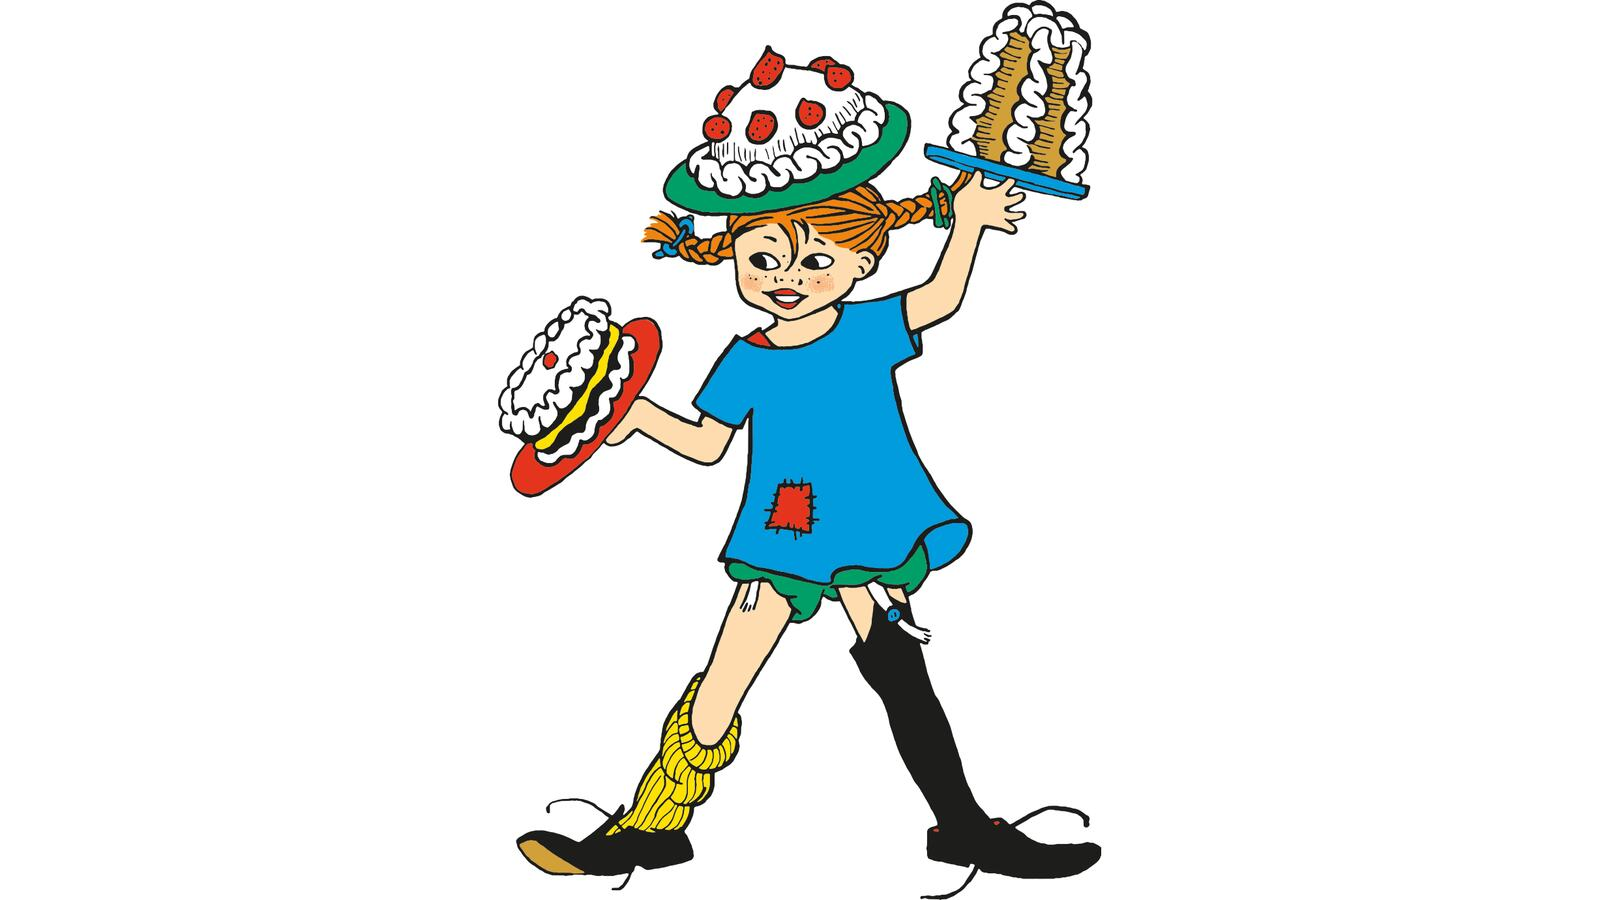 Illustration of Pippi Longstocking